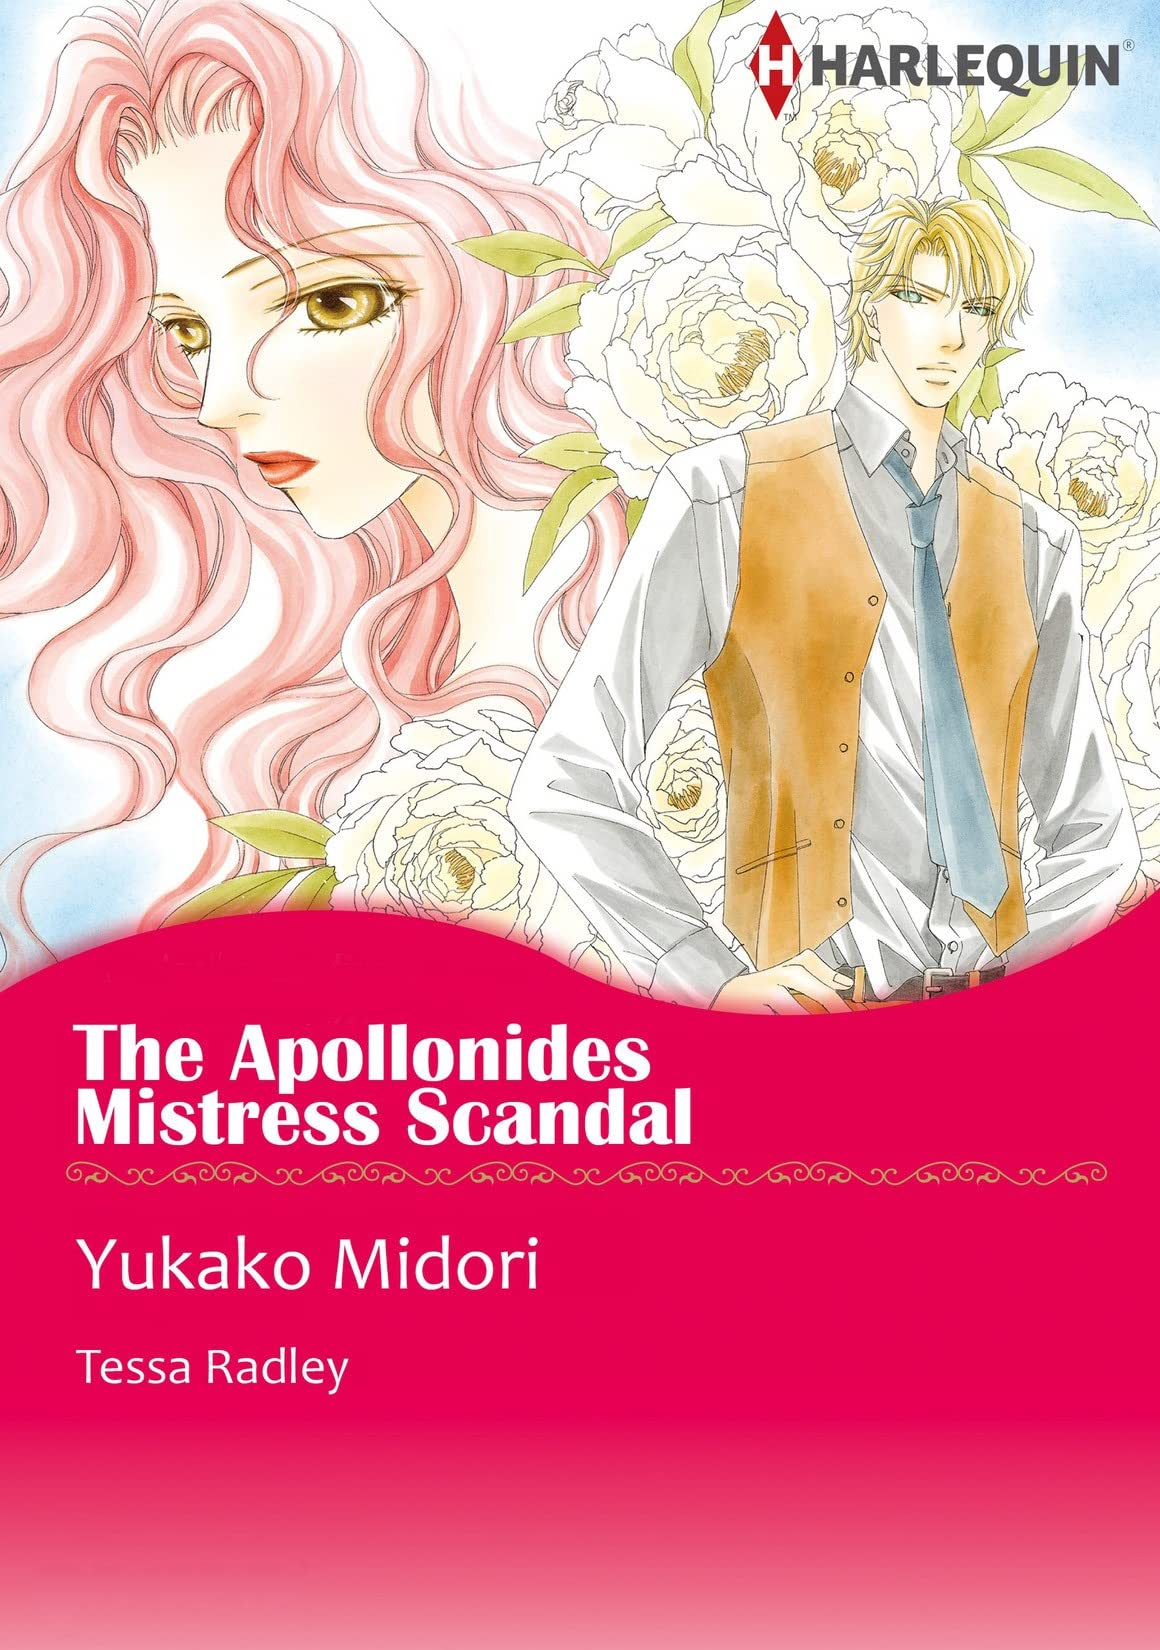 The Apollonides Mistress Scandal